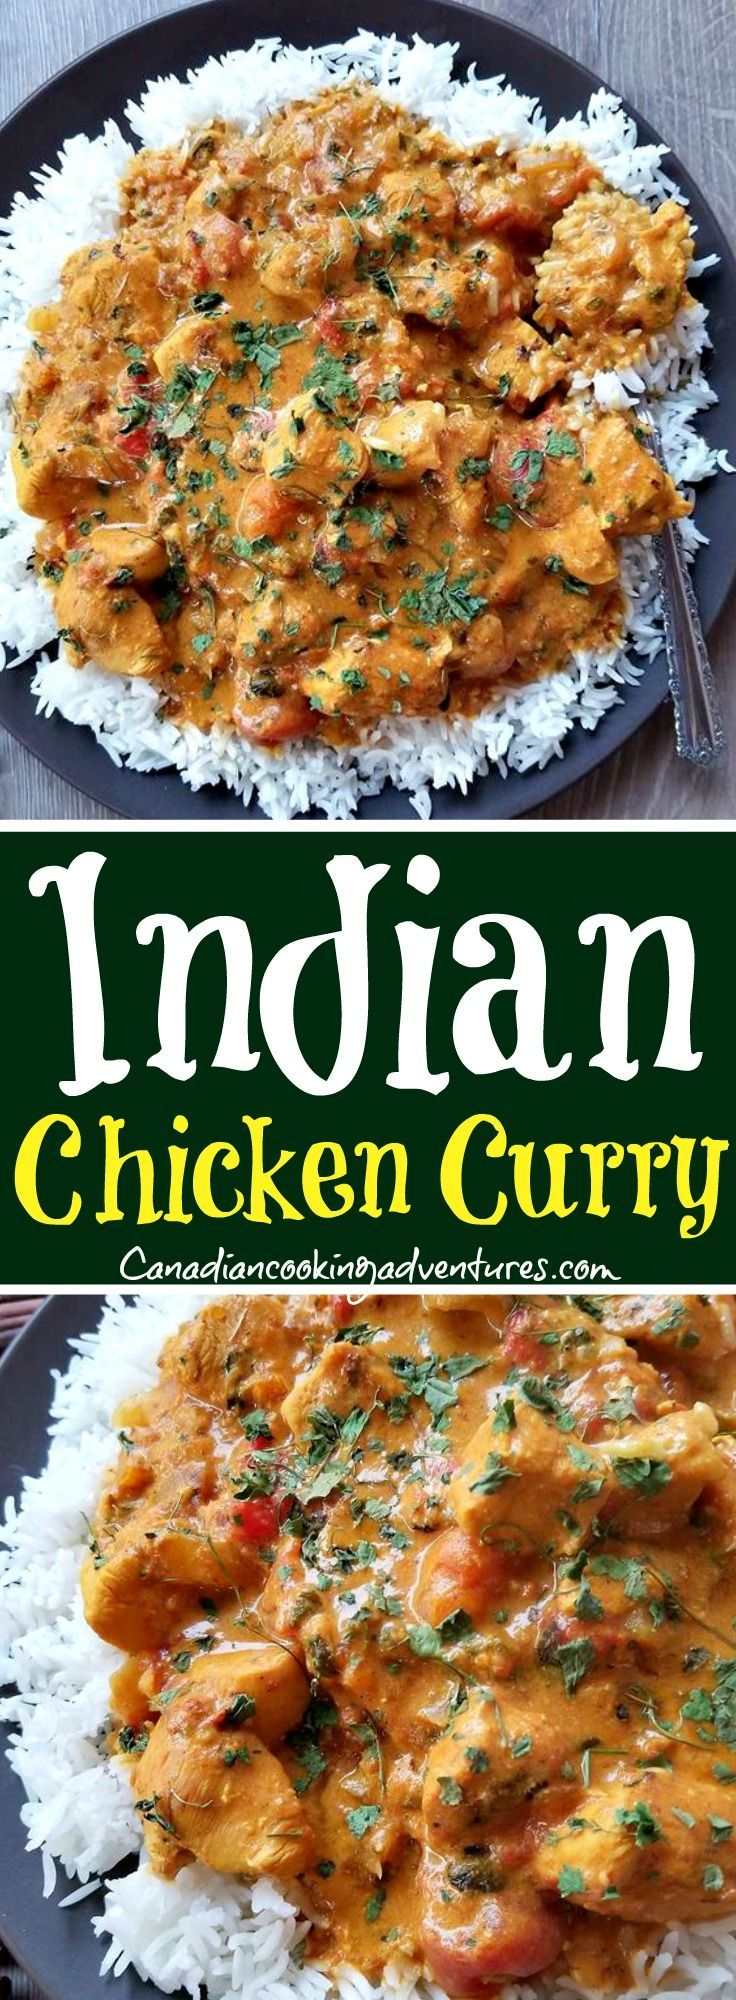 Indian Chicken Curry #crockpotchickeneasy